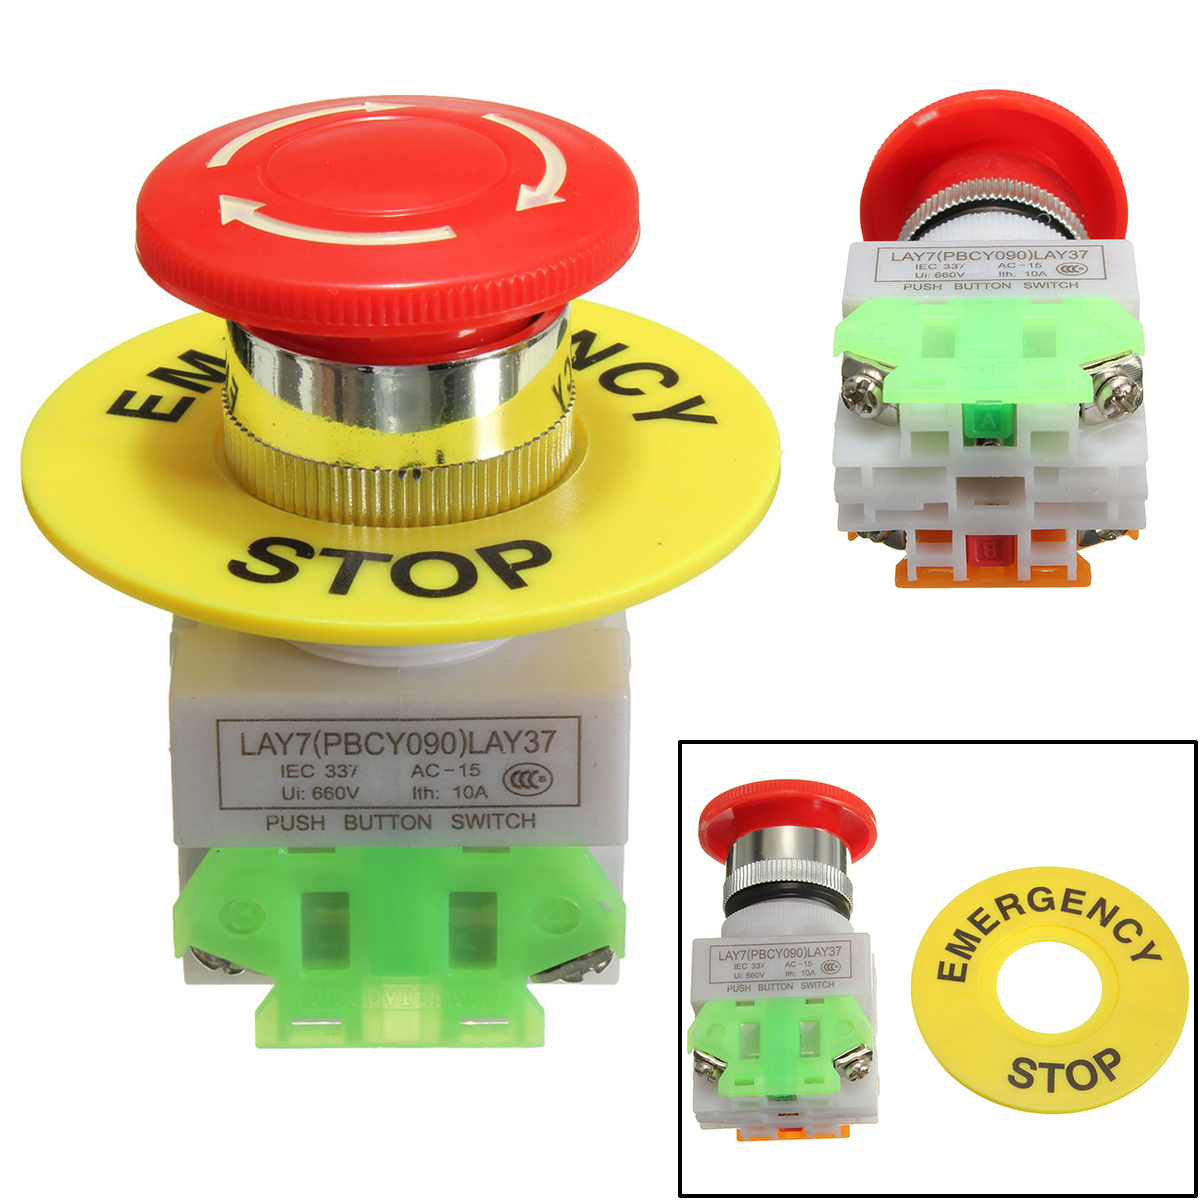 1pc New Emergency Stop Push Button Switch Self Locking Red Mushroom Switch 660V 10A 1pc new emergency stop push button switch self locking red mushroom switch 660v 10a